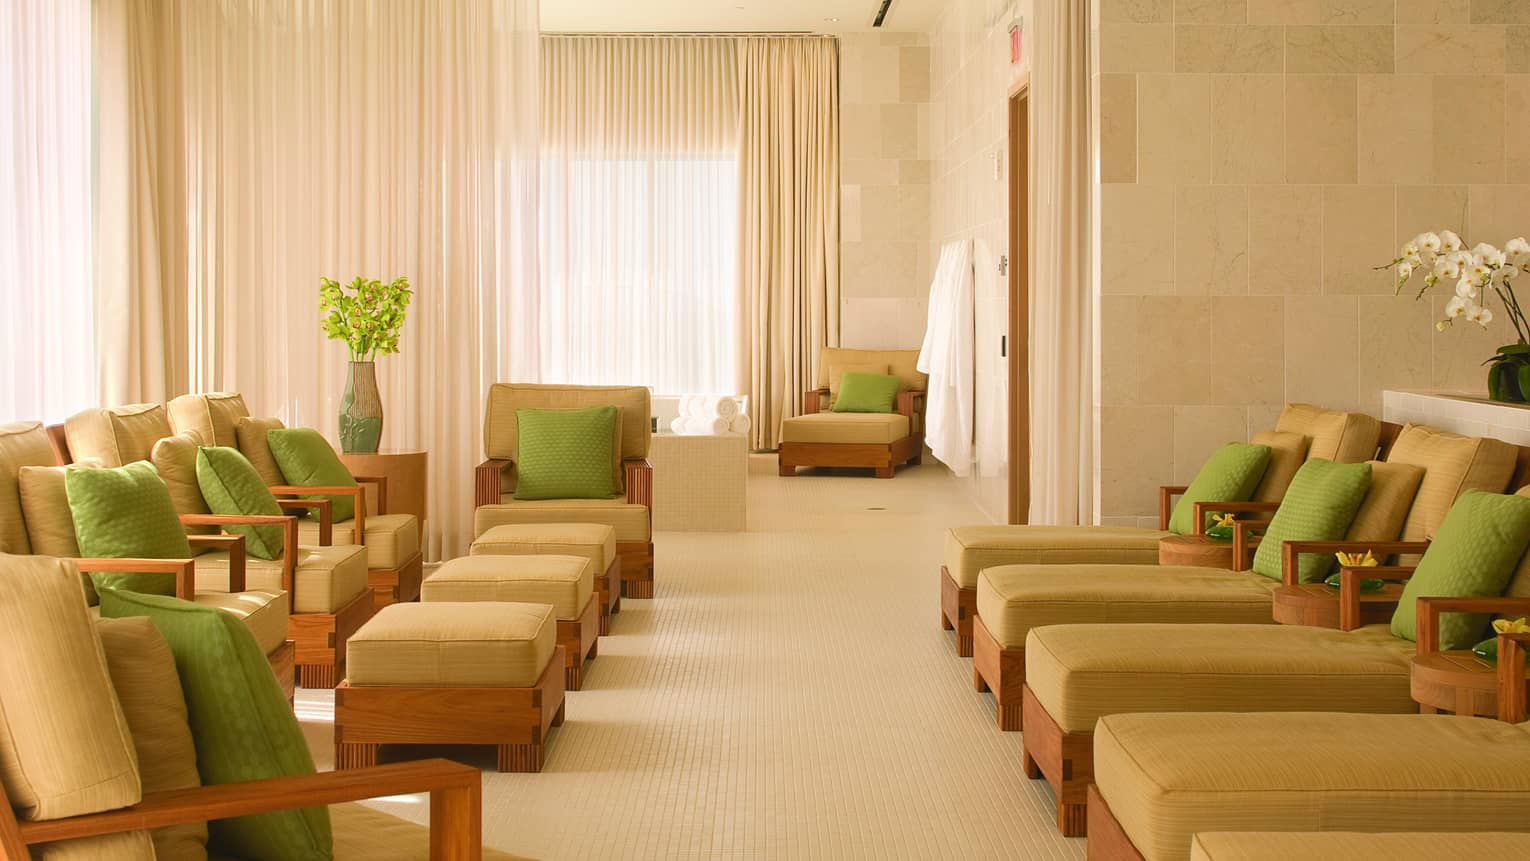 Spa lounge with rows of plush beige chairs and chaise lounges with lime green accent pillows